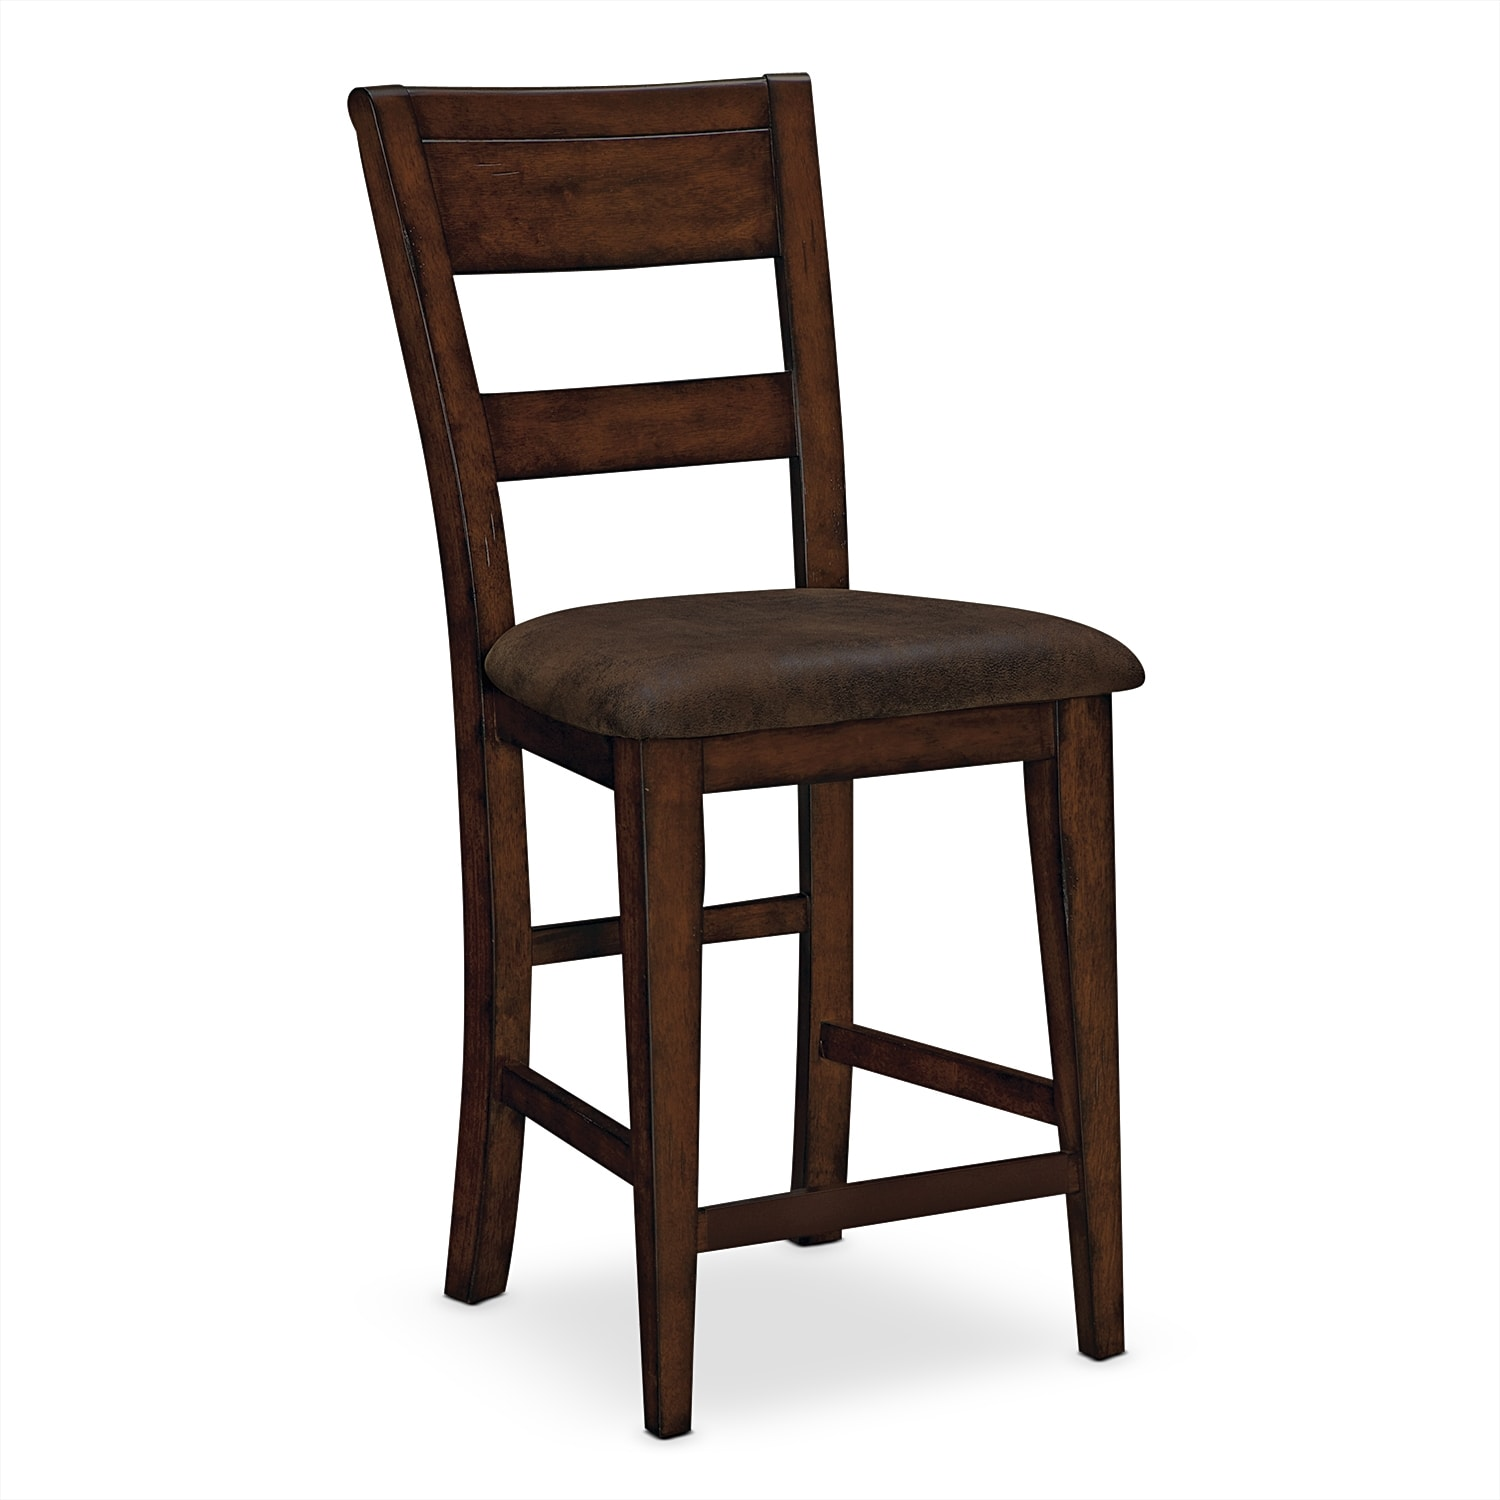 Counter Height Dining Room Chairs Everett Dining Room Counter Height Stool Value City